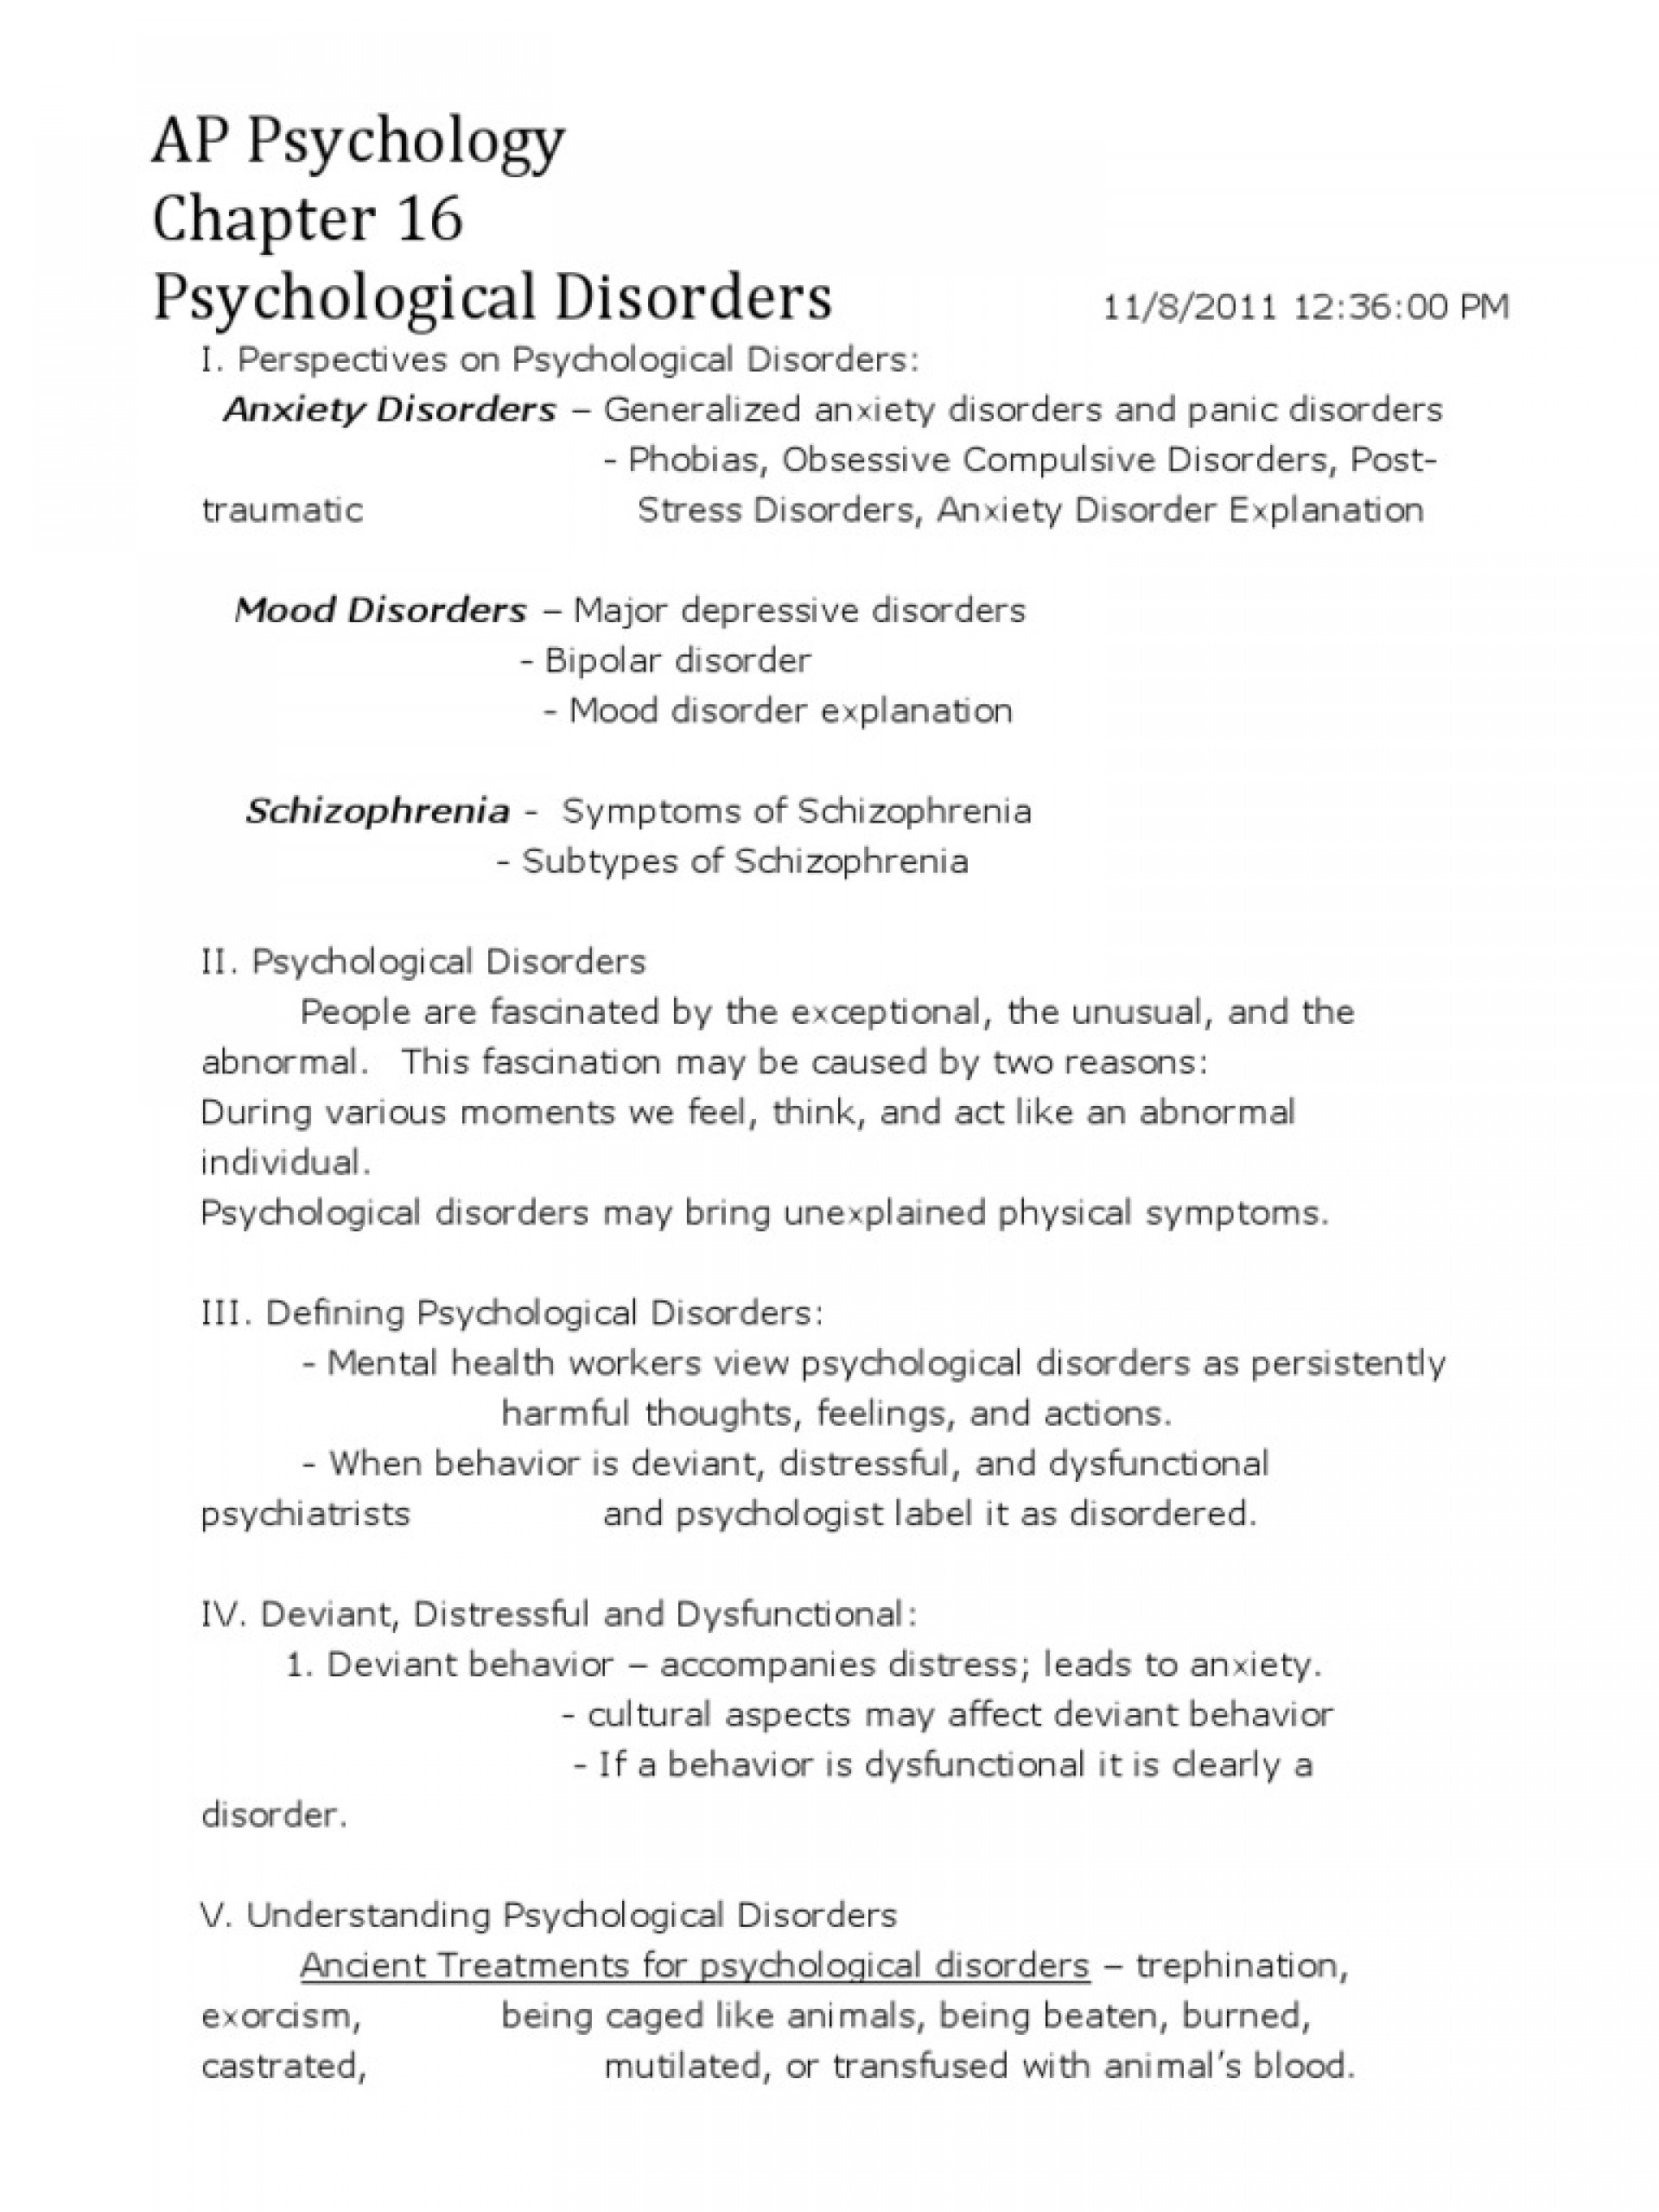 008 Bipolar Disorder Essay Topics Title Pdf College Introduction Question Conclusion Examples Outline Research Paper English Marvelous 101 Rubric 1920